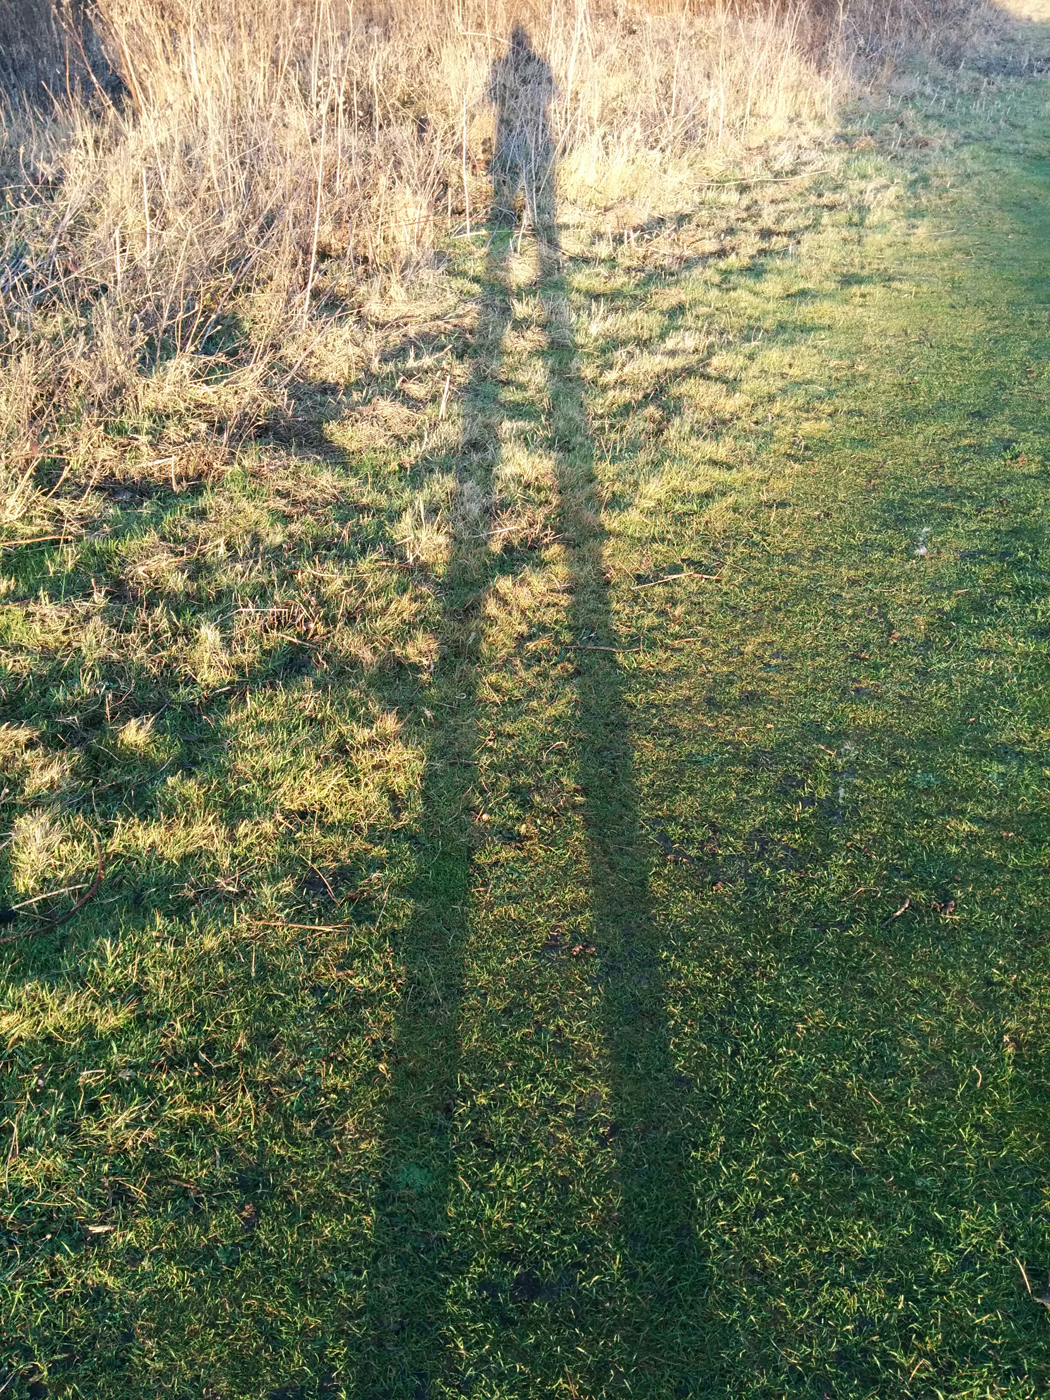 Giant shadow